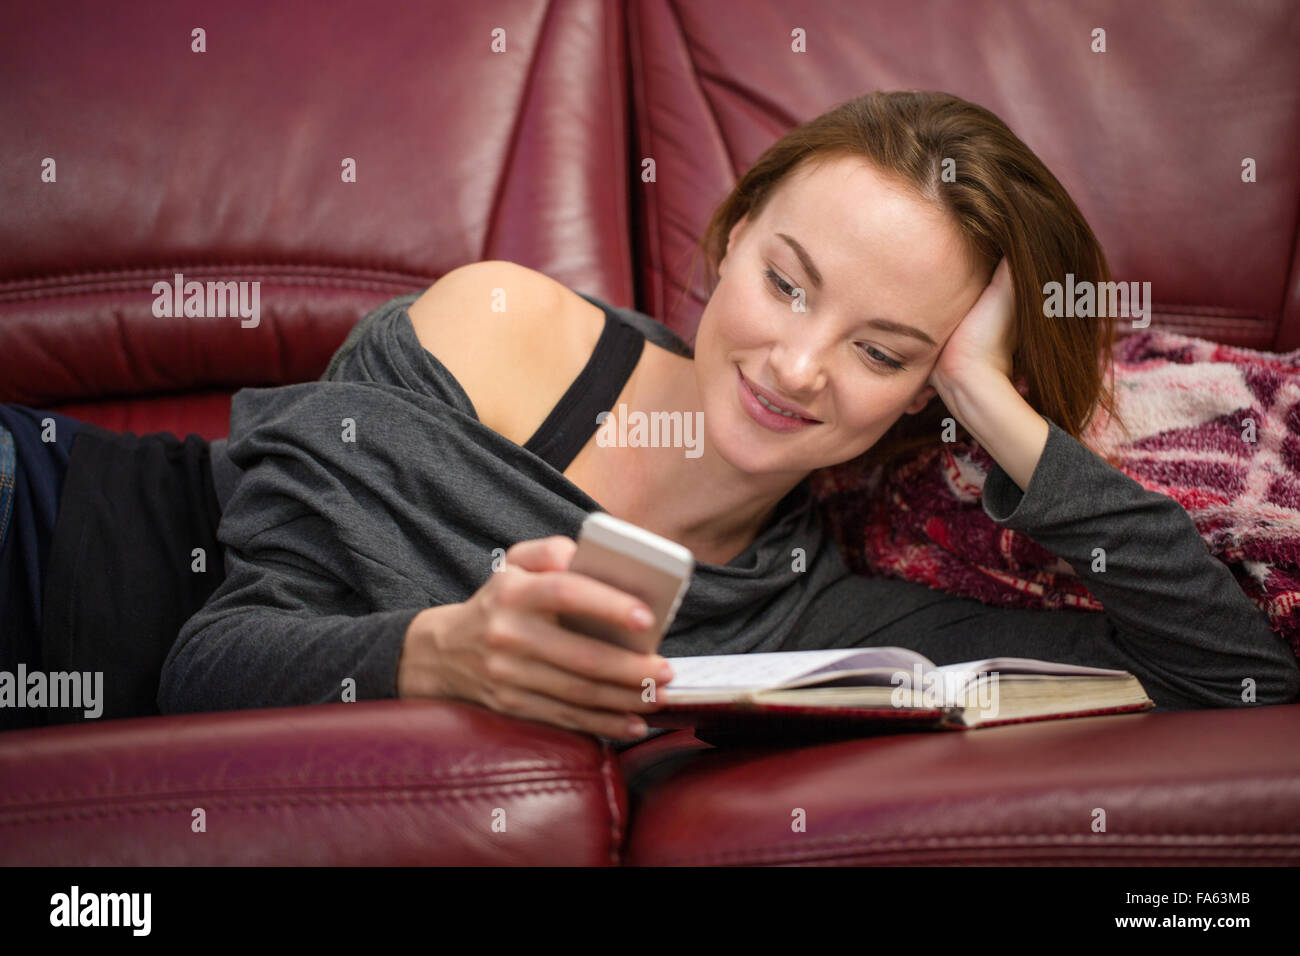 Smiling pretty young redhead woman reading book and using mobile phone at home - Stock Image